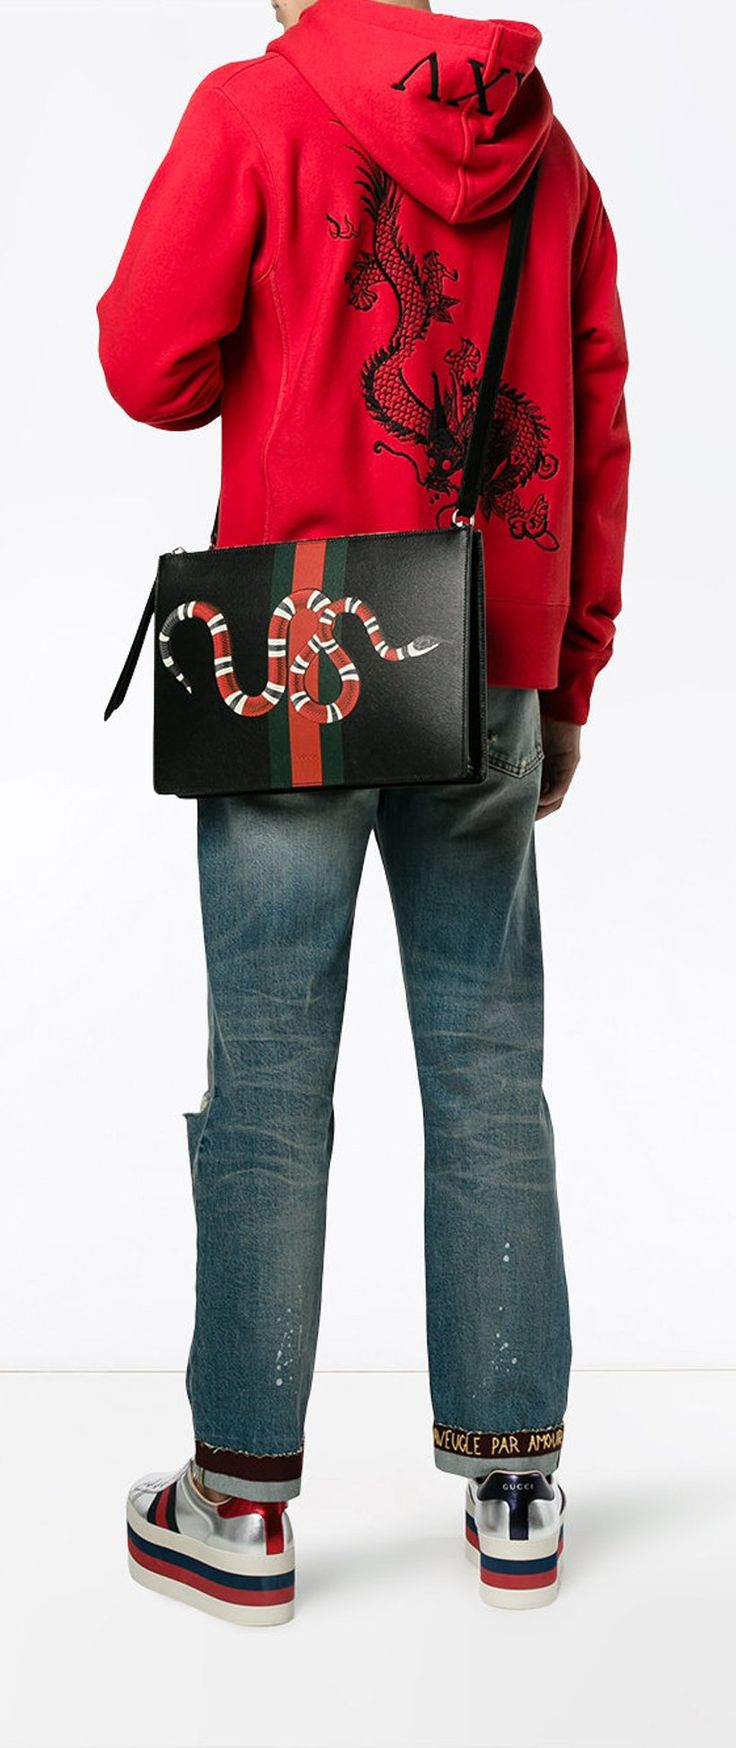 GUCCI web and snake messenger bag, explore new season Gucci on Farfetch now.